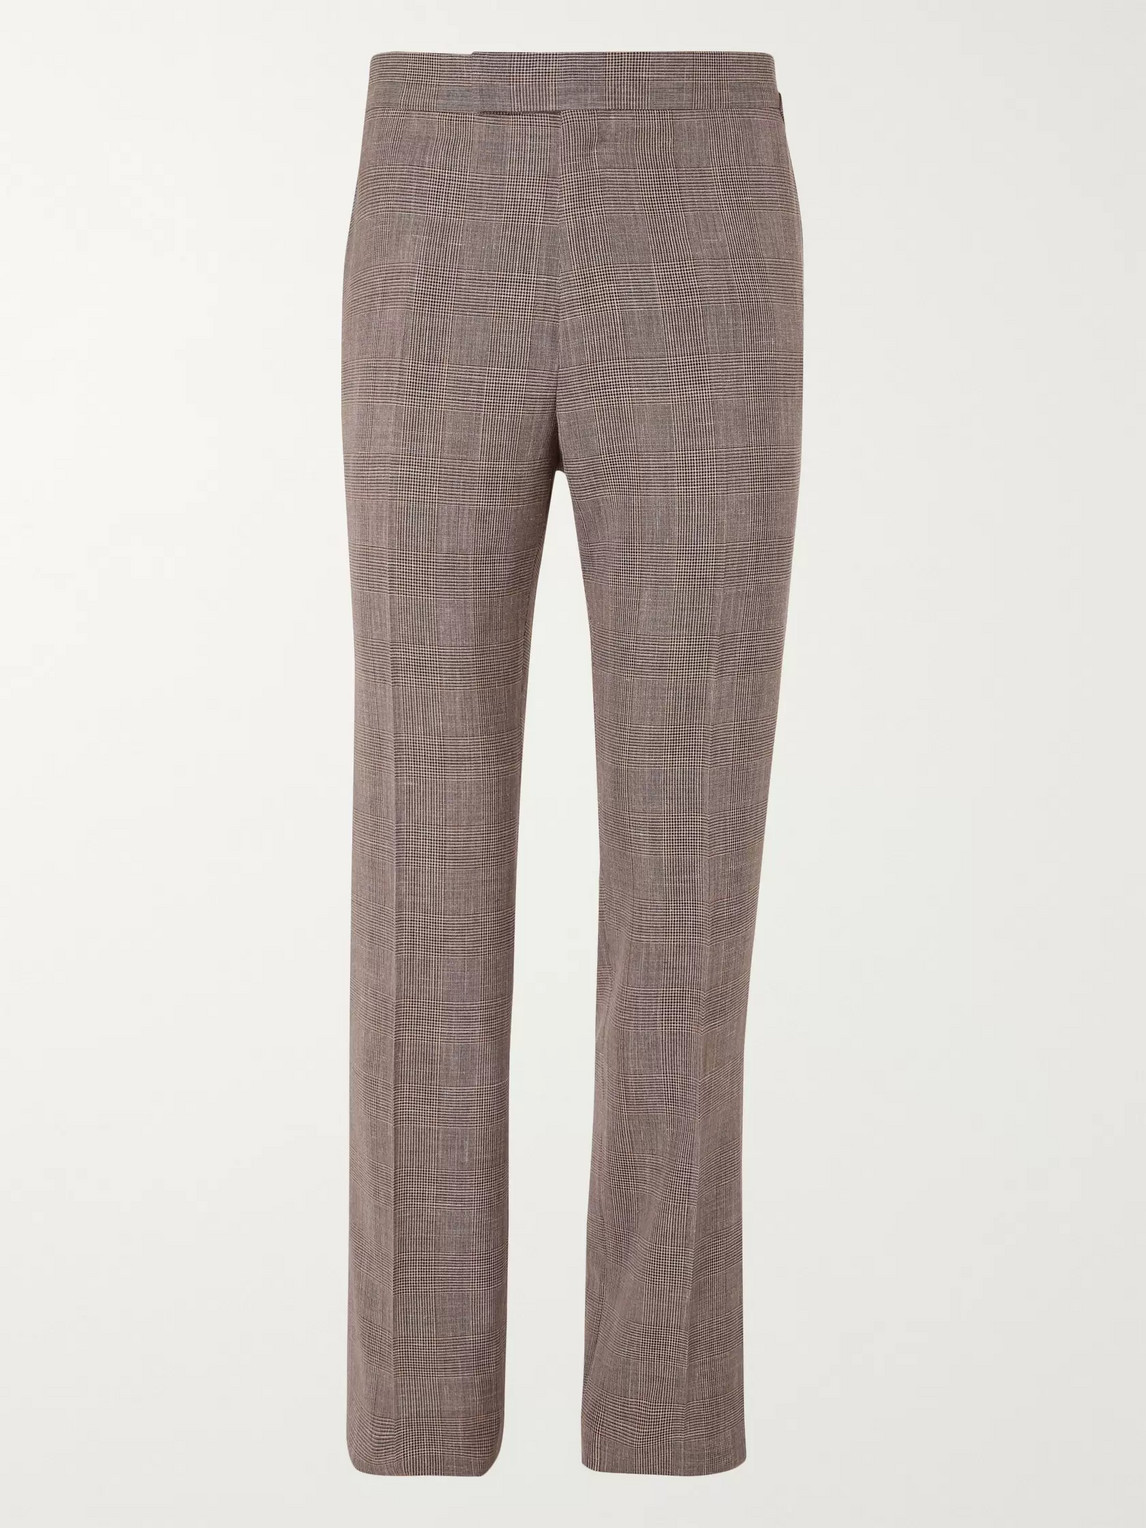 Kingsman Prince Of Wales Checked Wool, Silk And Linen-blend Suit Trousers In Brown